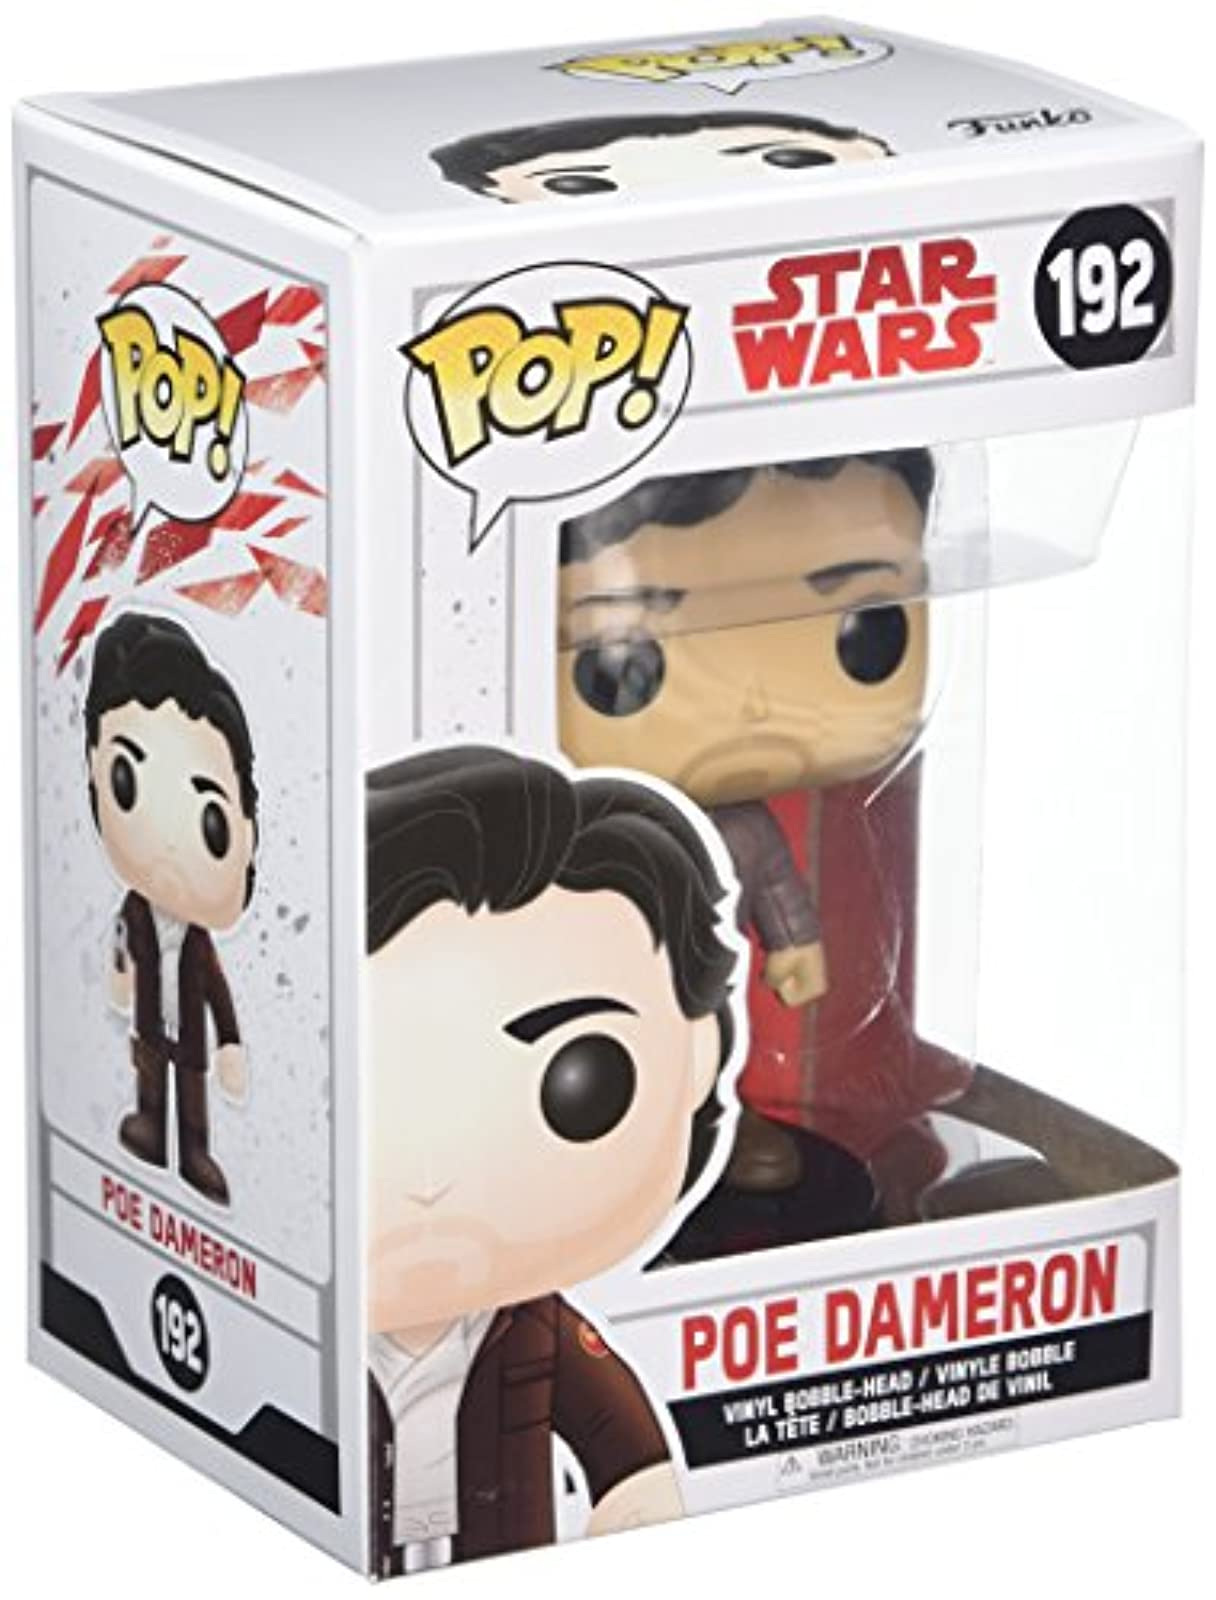 Funko Pop! Star Wars: The Last Jedi Poe Dameron Collectible Figure Toy Figurine